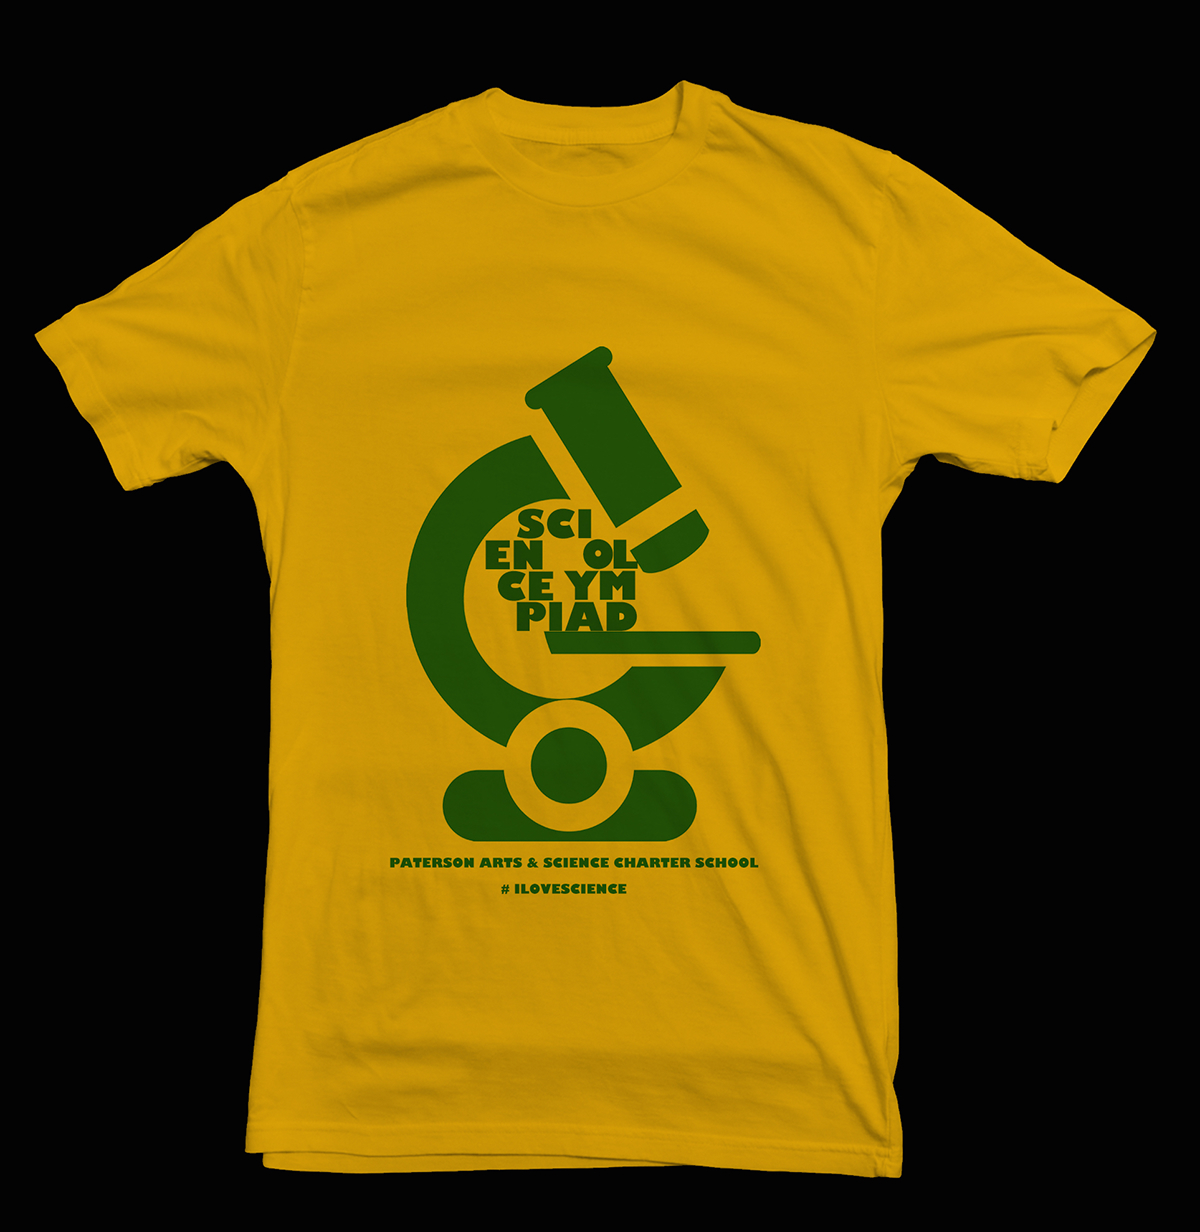 Science Olympiad T Shirt Design On Behance